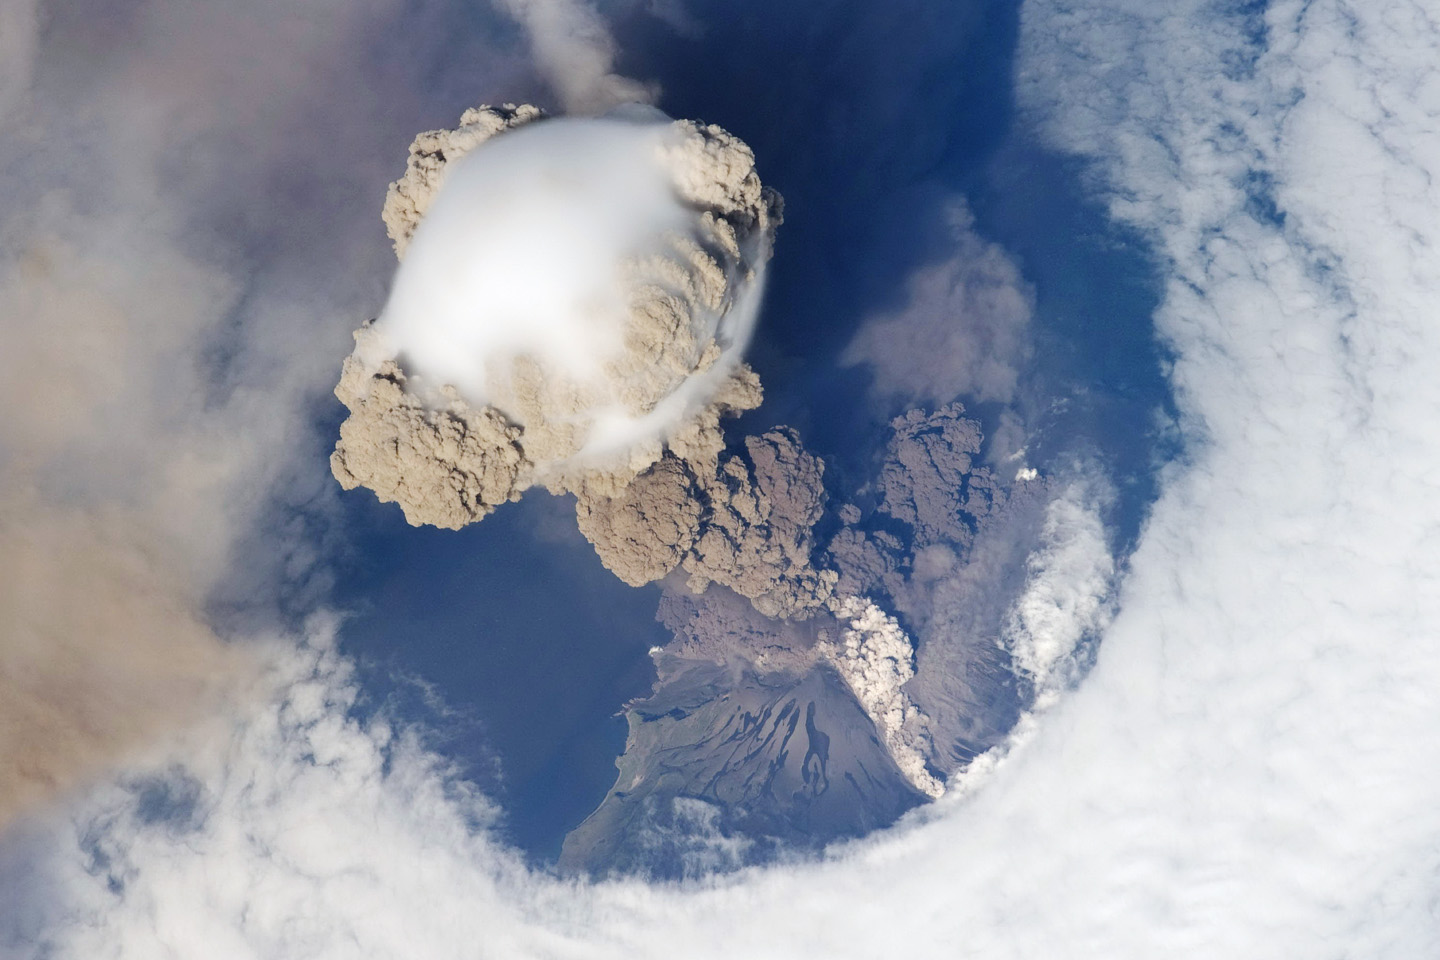 Sarychev Eruption: Image Credit- NASA